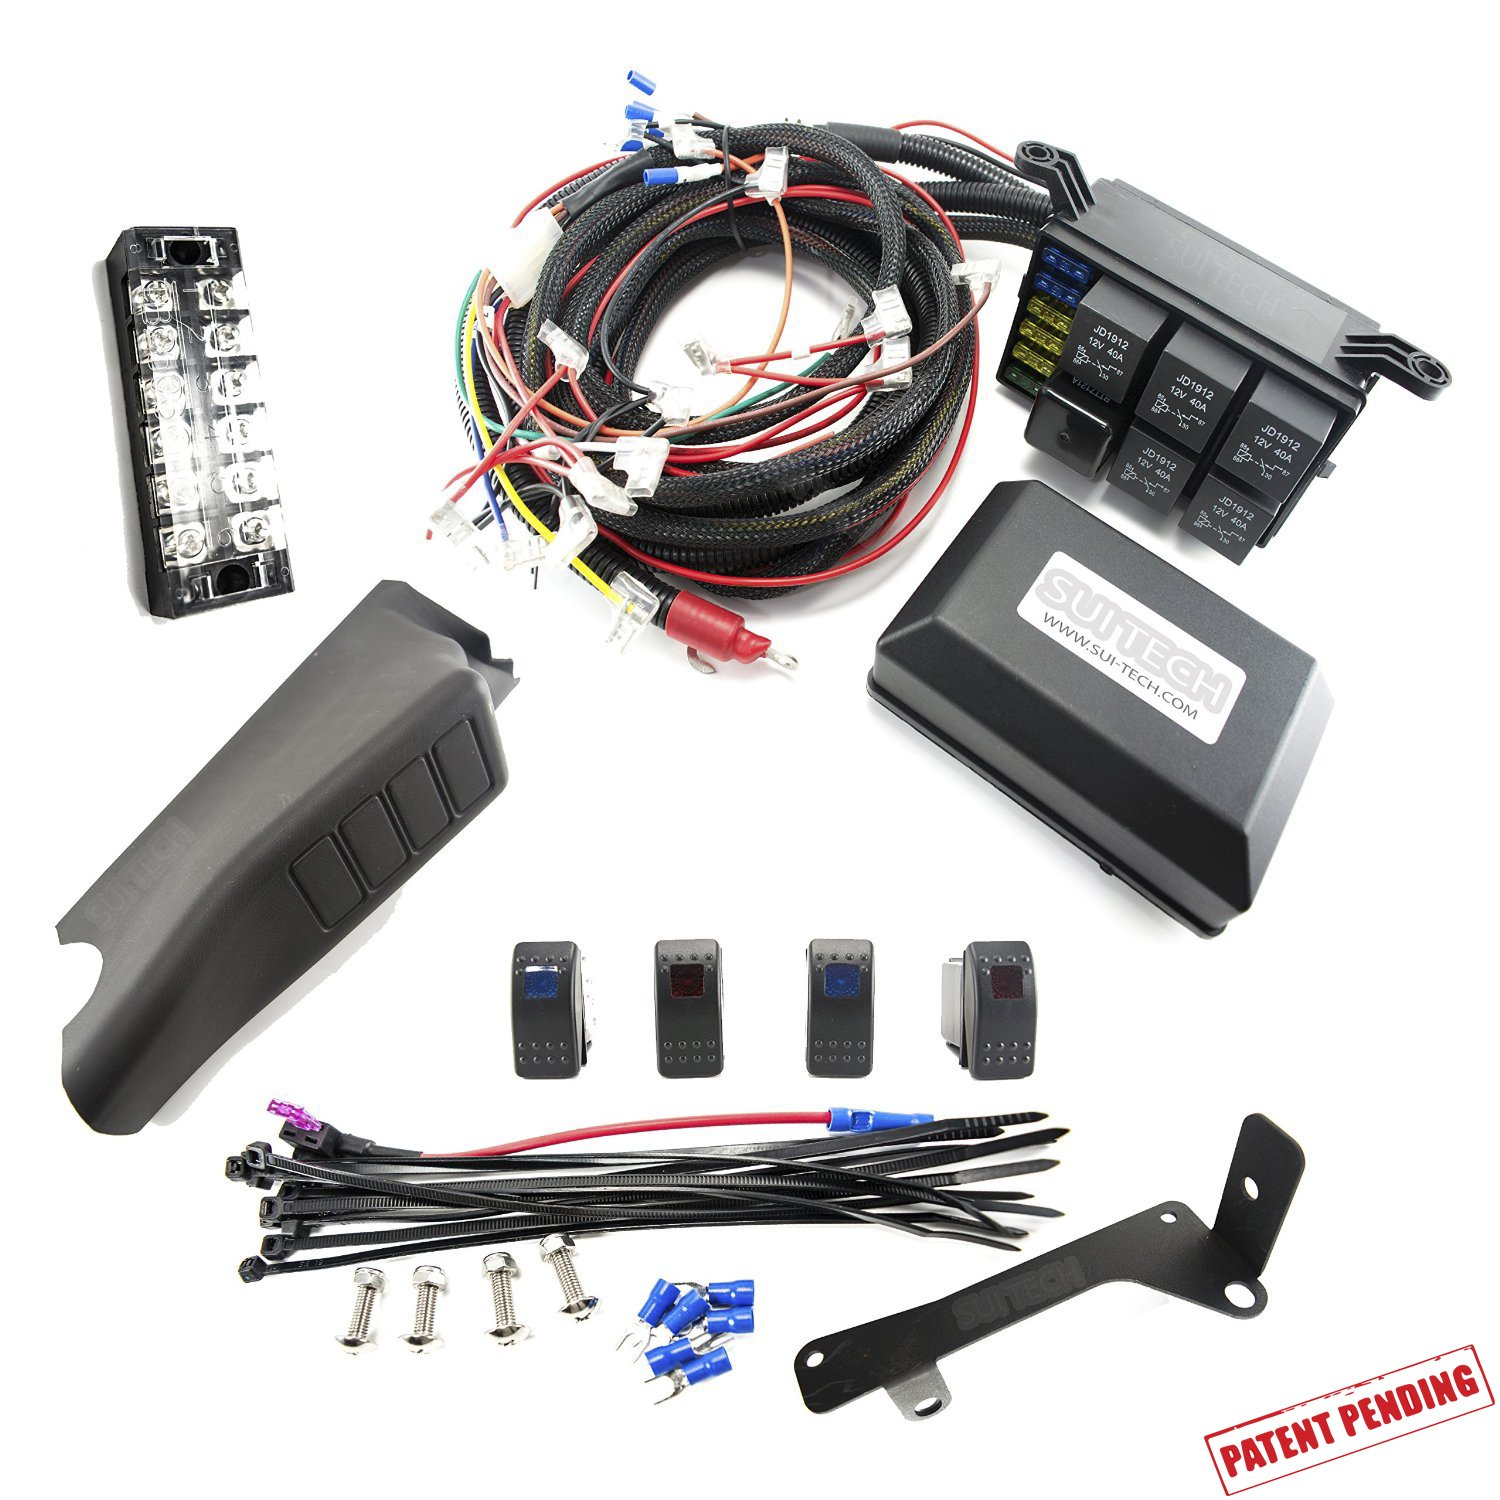 Jeep Jk Control Box Electronic 6 Relay System Module Wiring Aac Plug Harness Kit With Free 4 Rocker Switch Mount Power Up To Accessories And Led